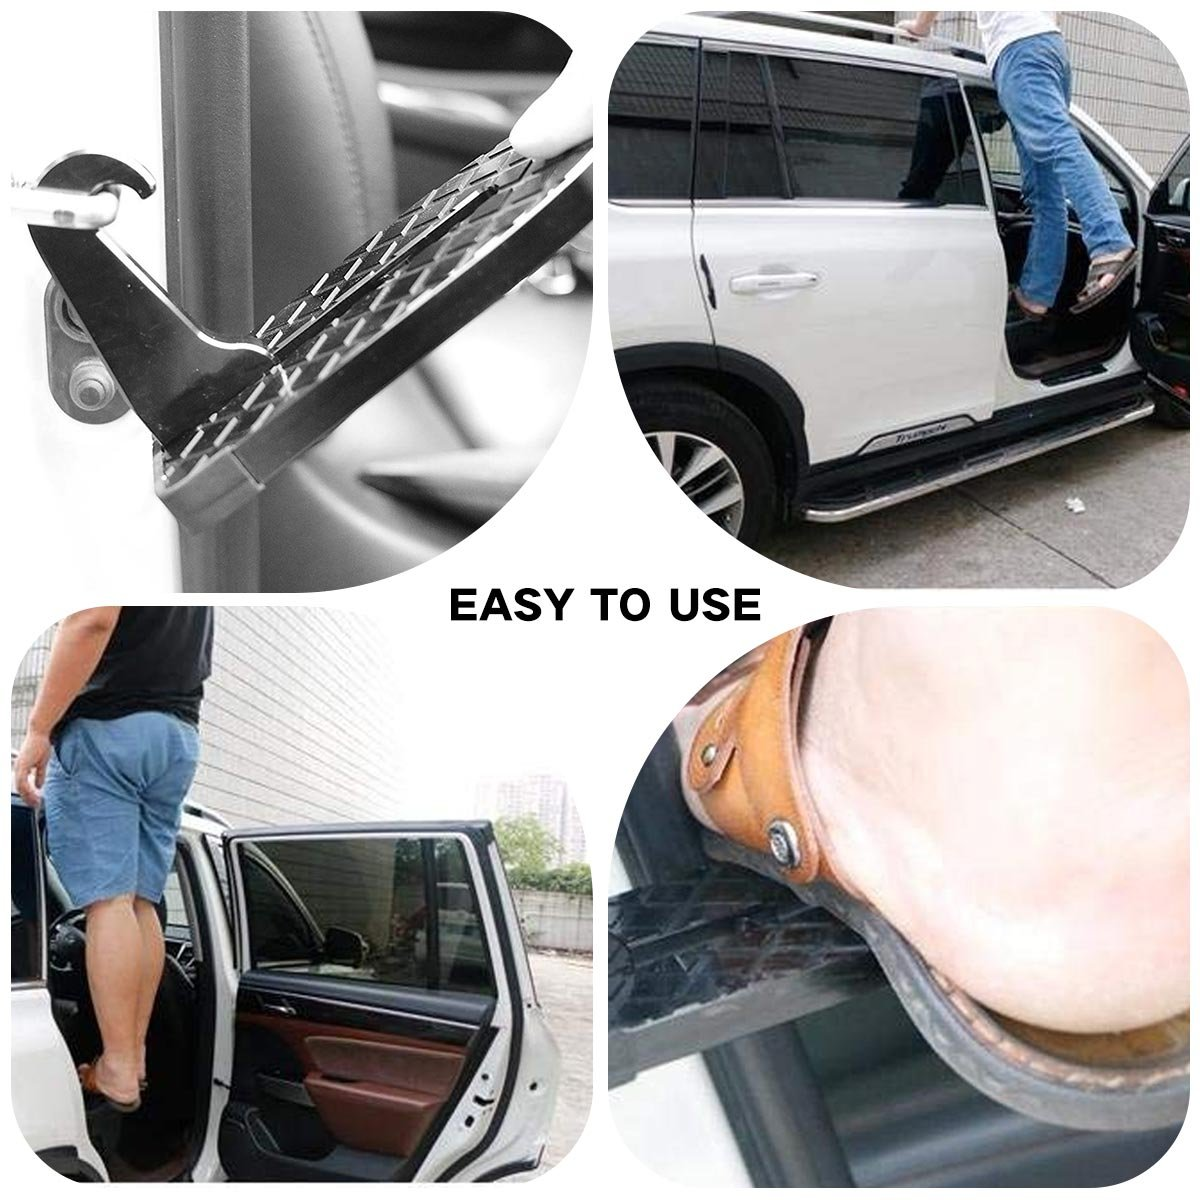 FitMaker Vehicle Hooked, U Shaped Vehicle Rooftop Doorstep with Saftey Hammer Function for Easy Access to Car Rooftop Roof-rack, Doorstep for various vehicles by FitMaker (Image #2)